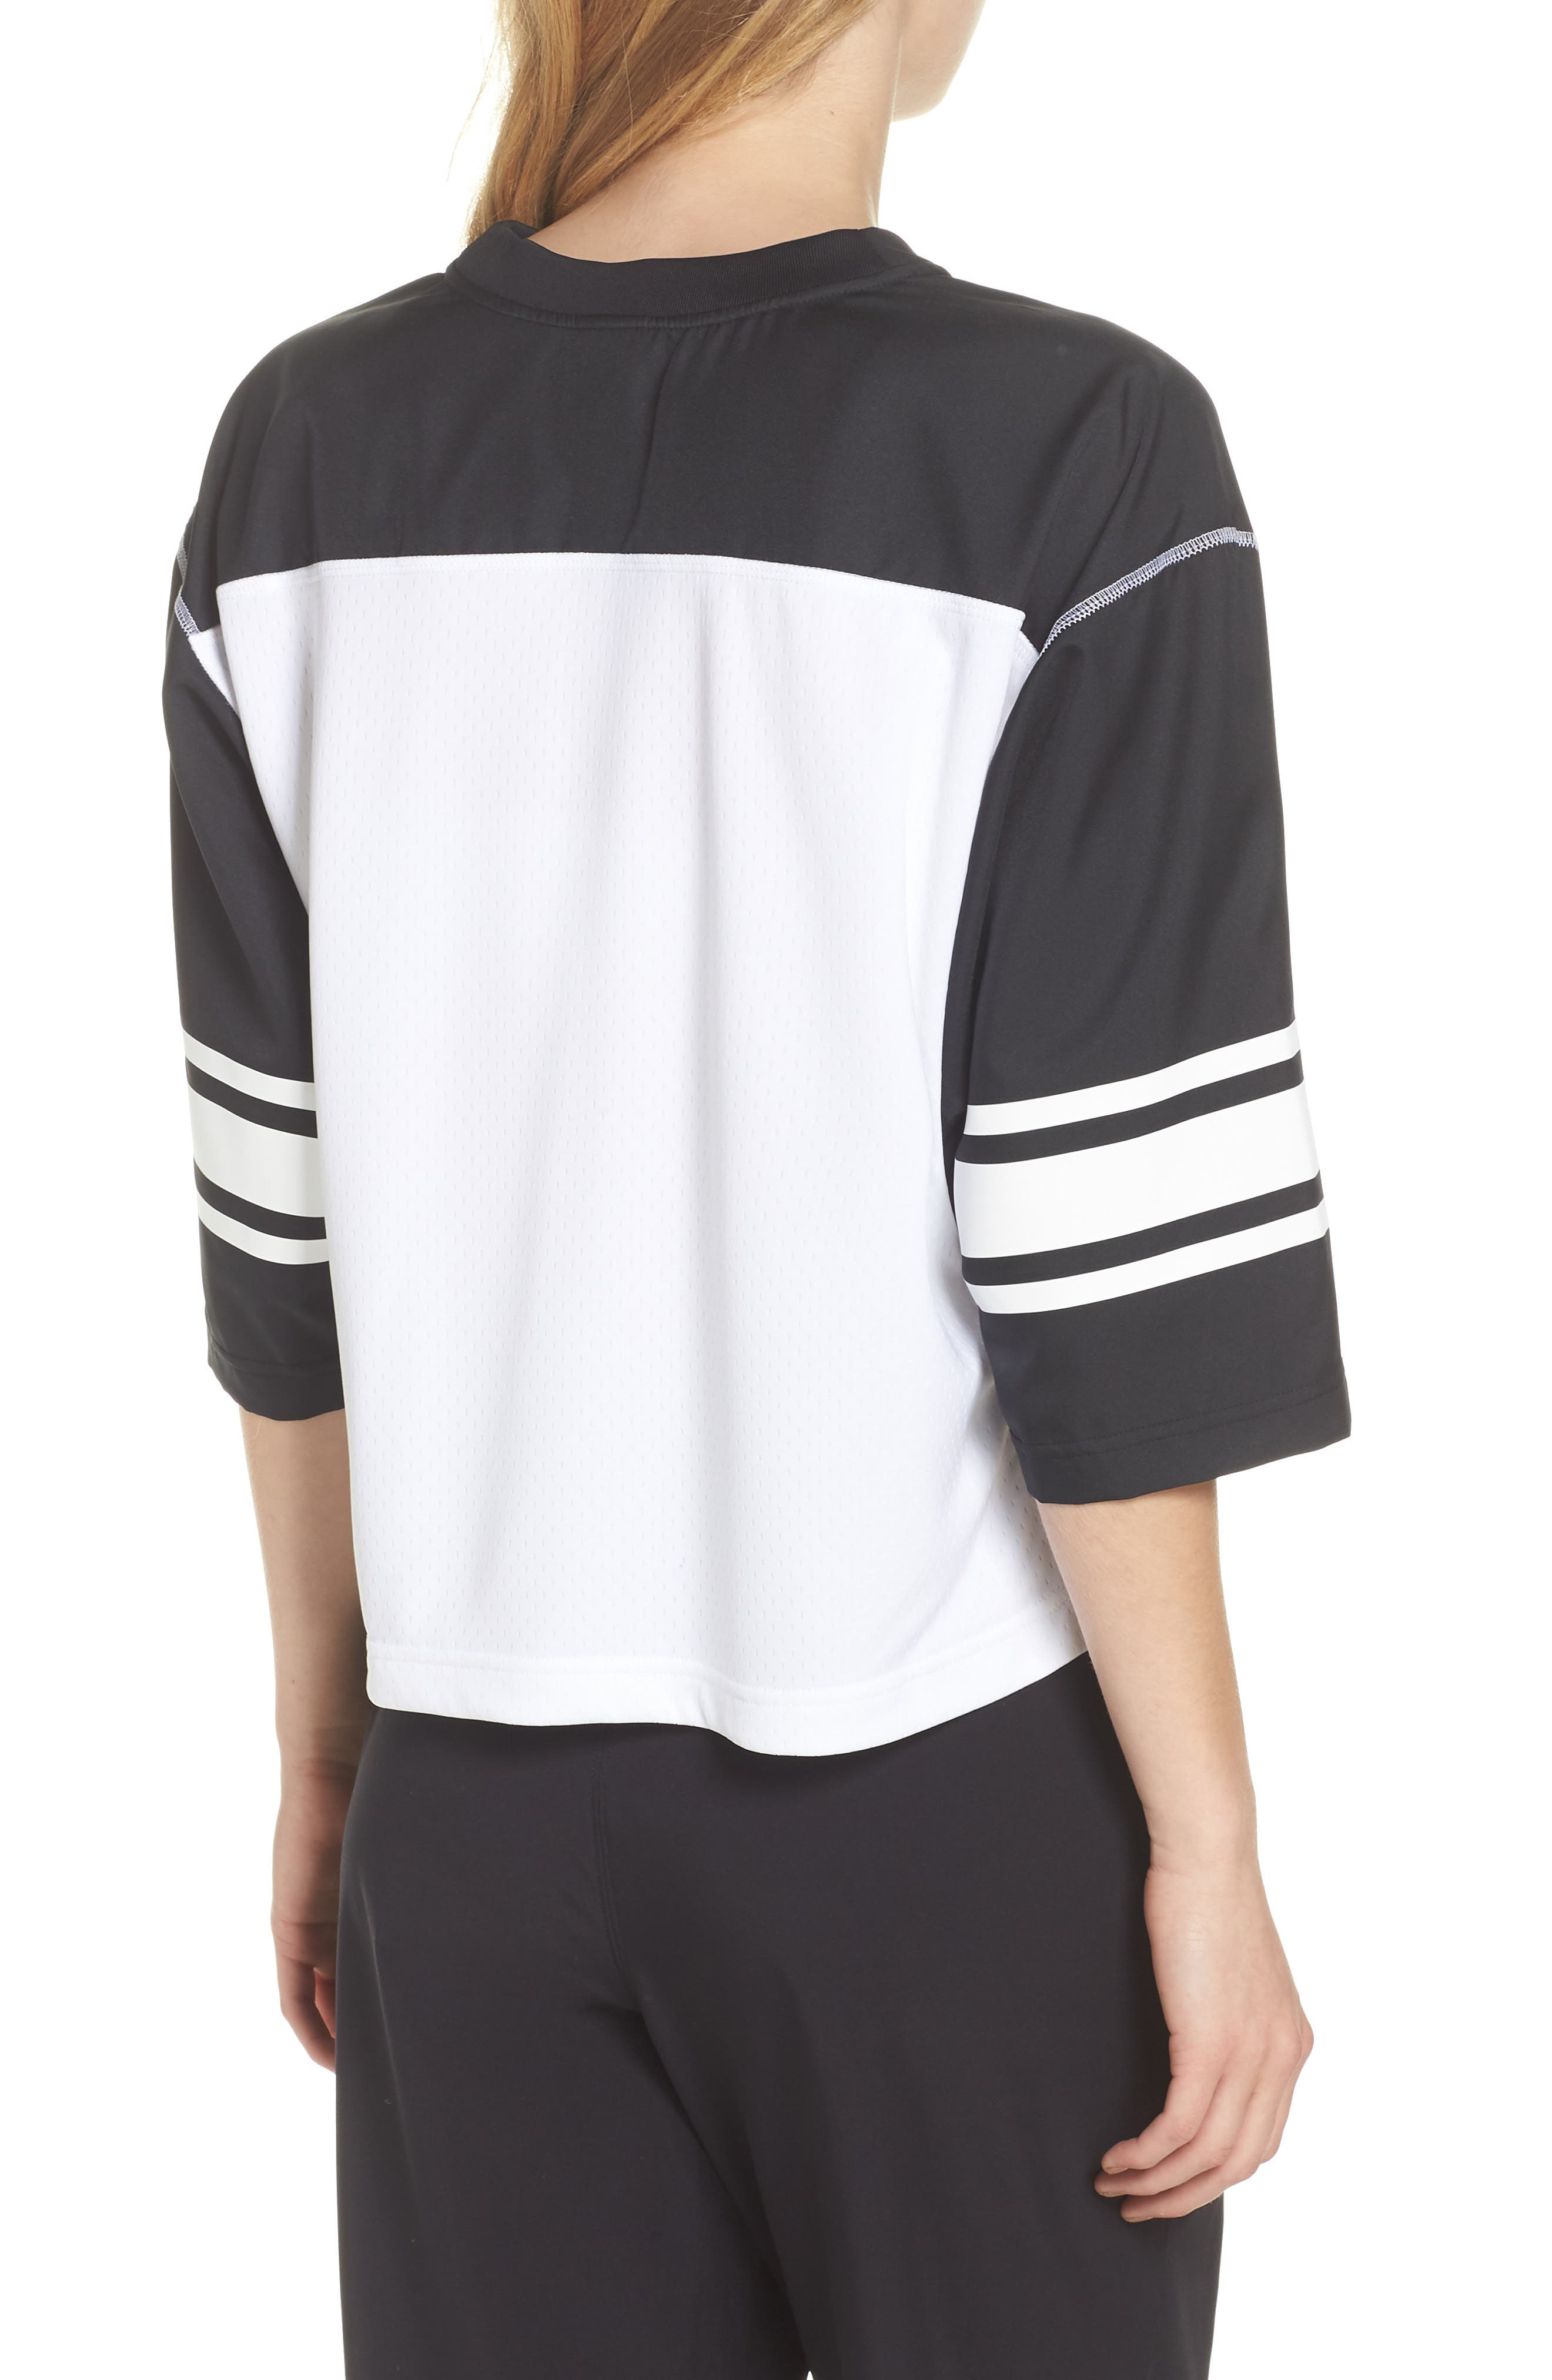 NikeLab Collection Football Top,                             Alternate thumbnail 2, color,                             BLACK/ WHITE/ BLACK